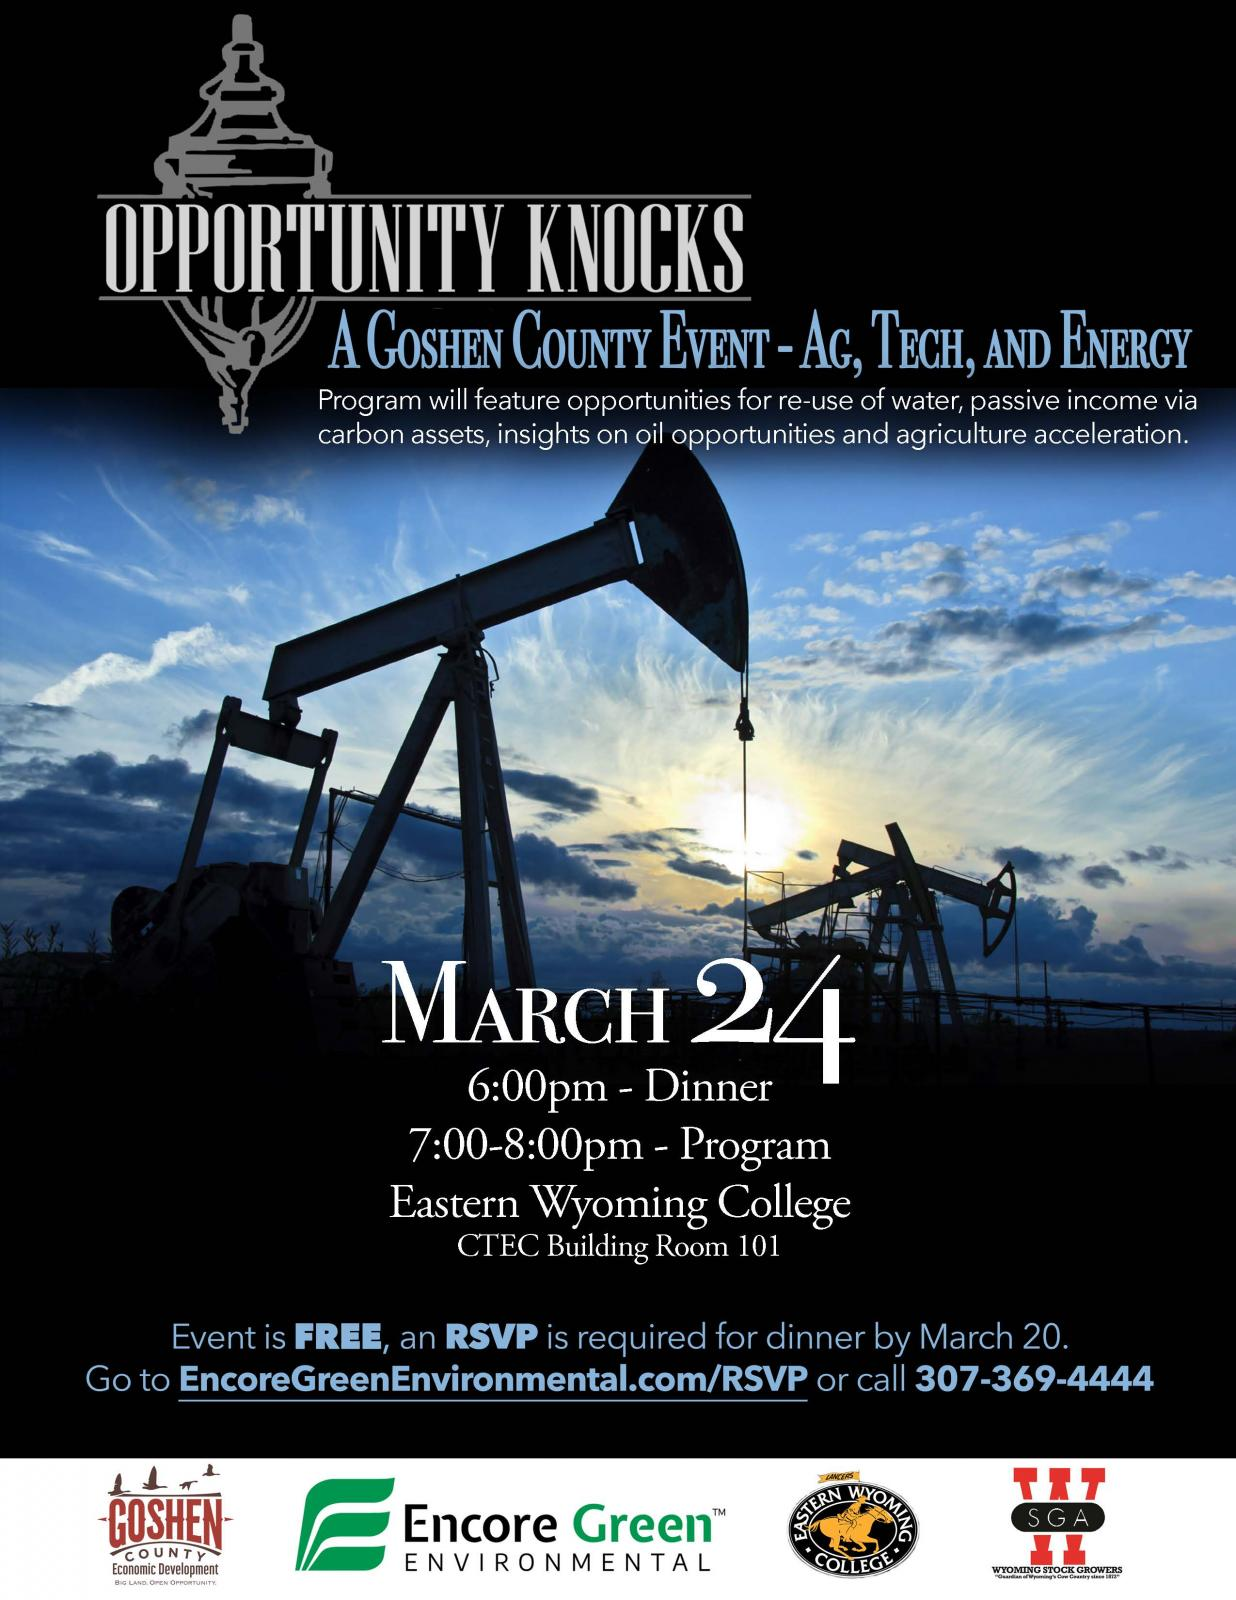 A Goshen County Event - AG, TECH, AND ENERGY Photo